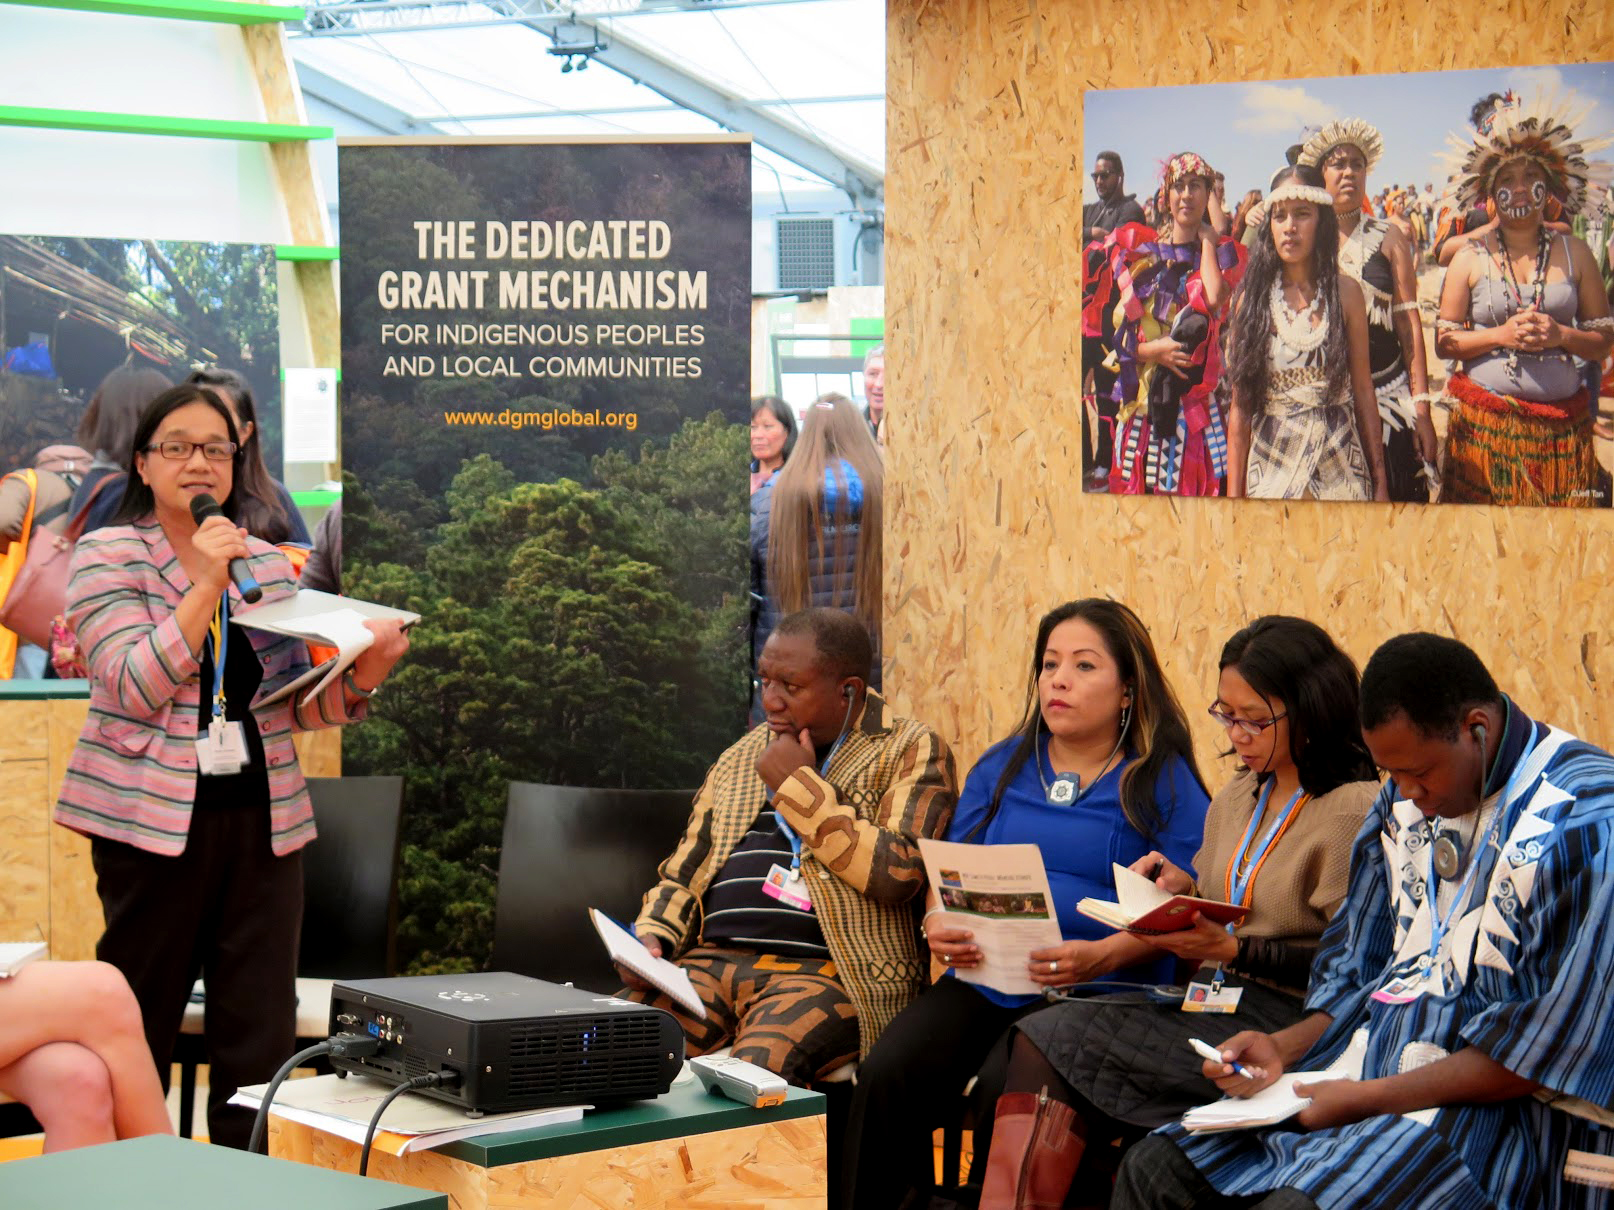 The DGM was represented at the IP Pavilion by, from left to right: Global Steering Committee co-chairs Grace Balawag and Kapupu Diwa (from the Philippines and DRC, respectively), Marilen Puquio Arturo (Peru), Mina Setra (Indonesia), Idrissa Zeba (Burkina Faso), and, not pictured, Januario Tseredzaro Ruri'õ (Brazil).